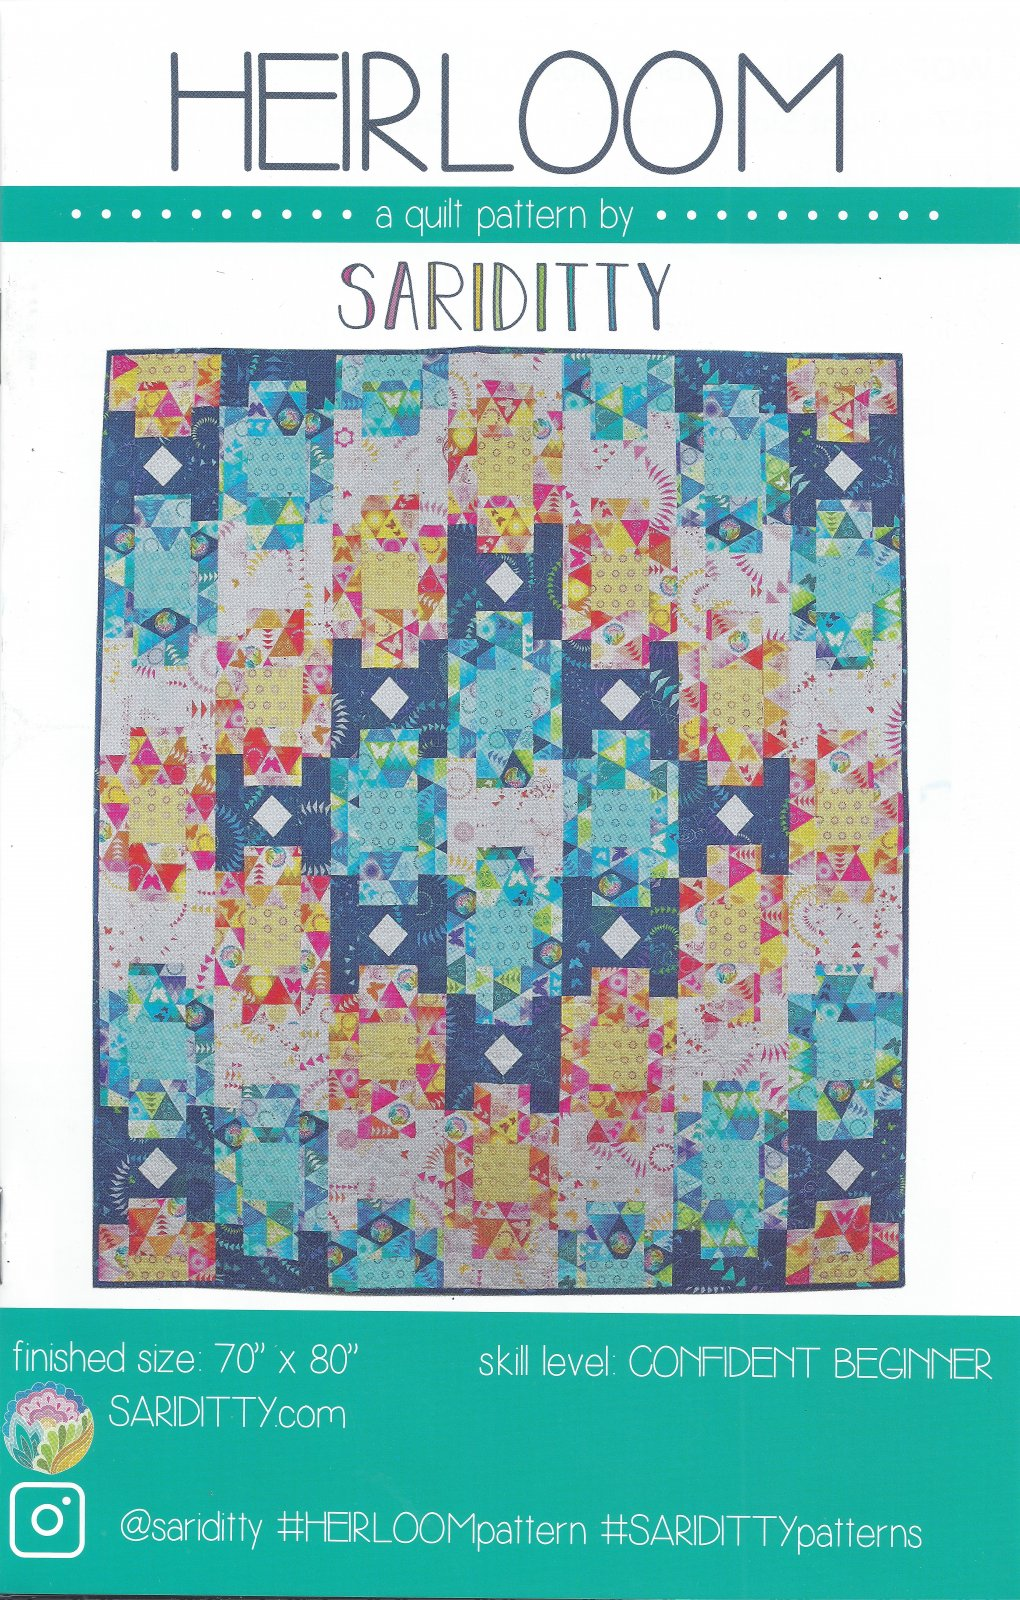 Heirloom Sariditty Pattern